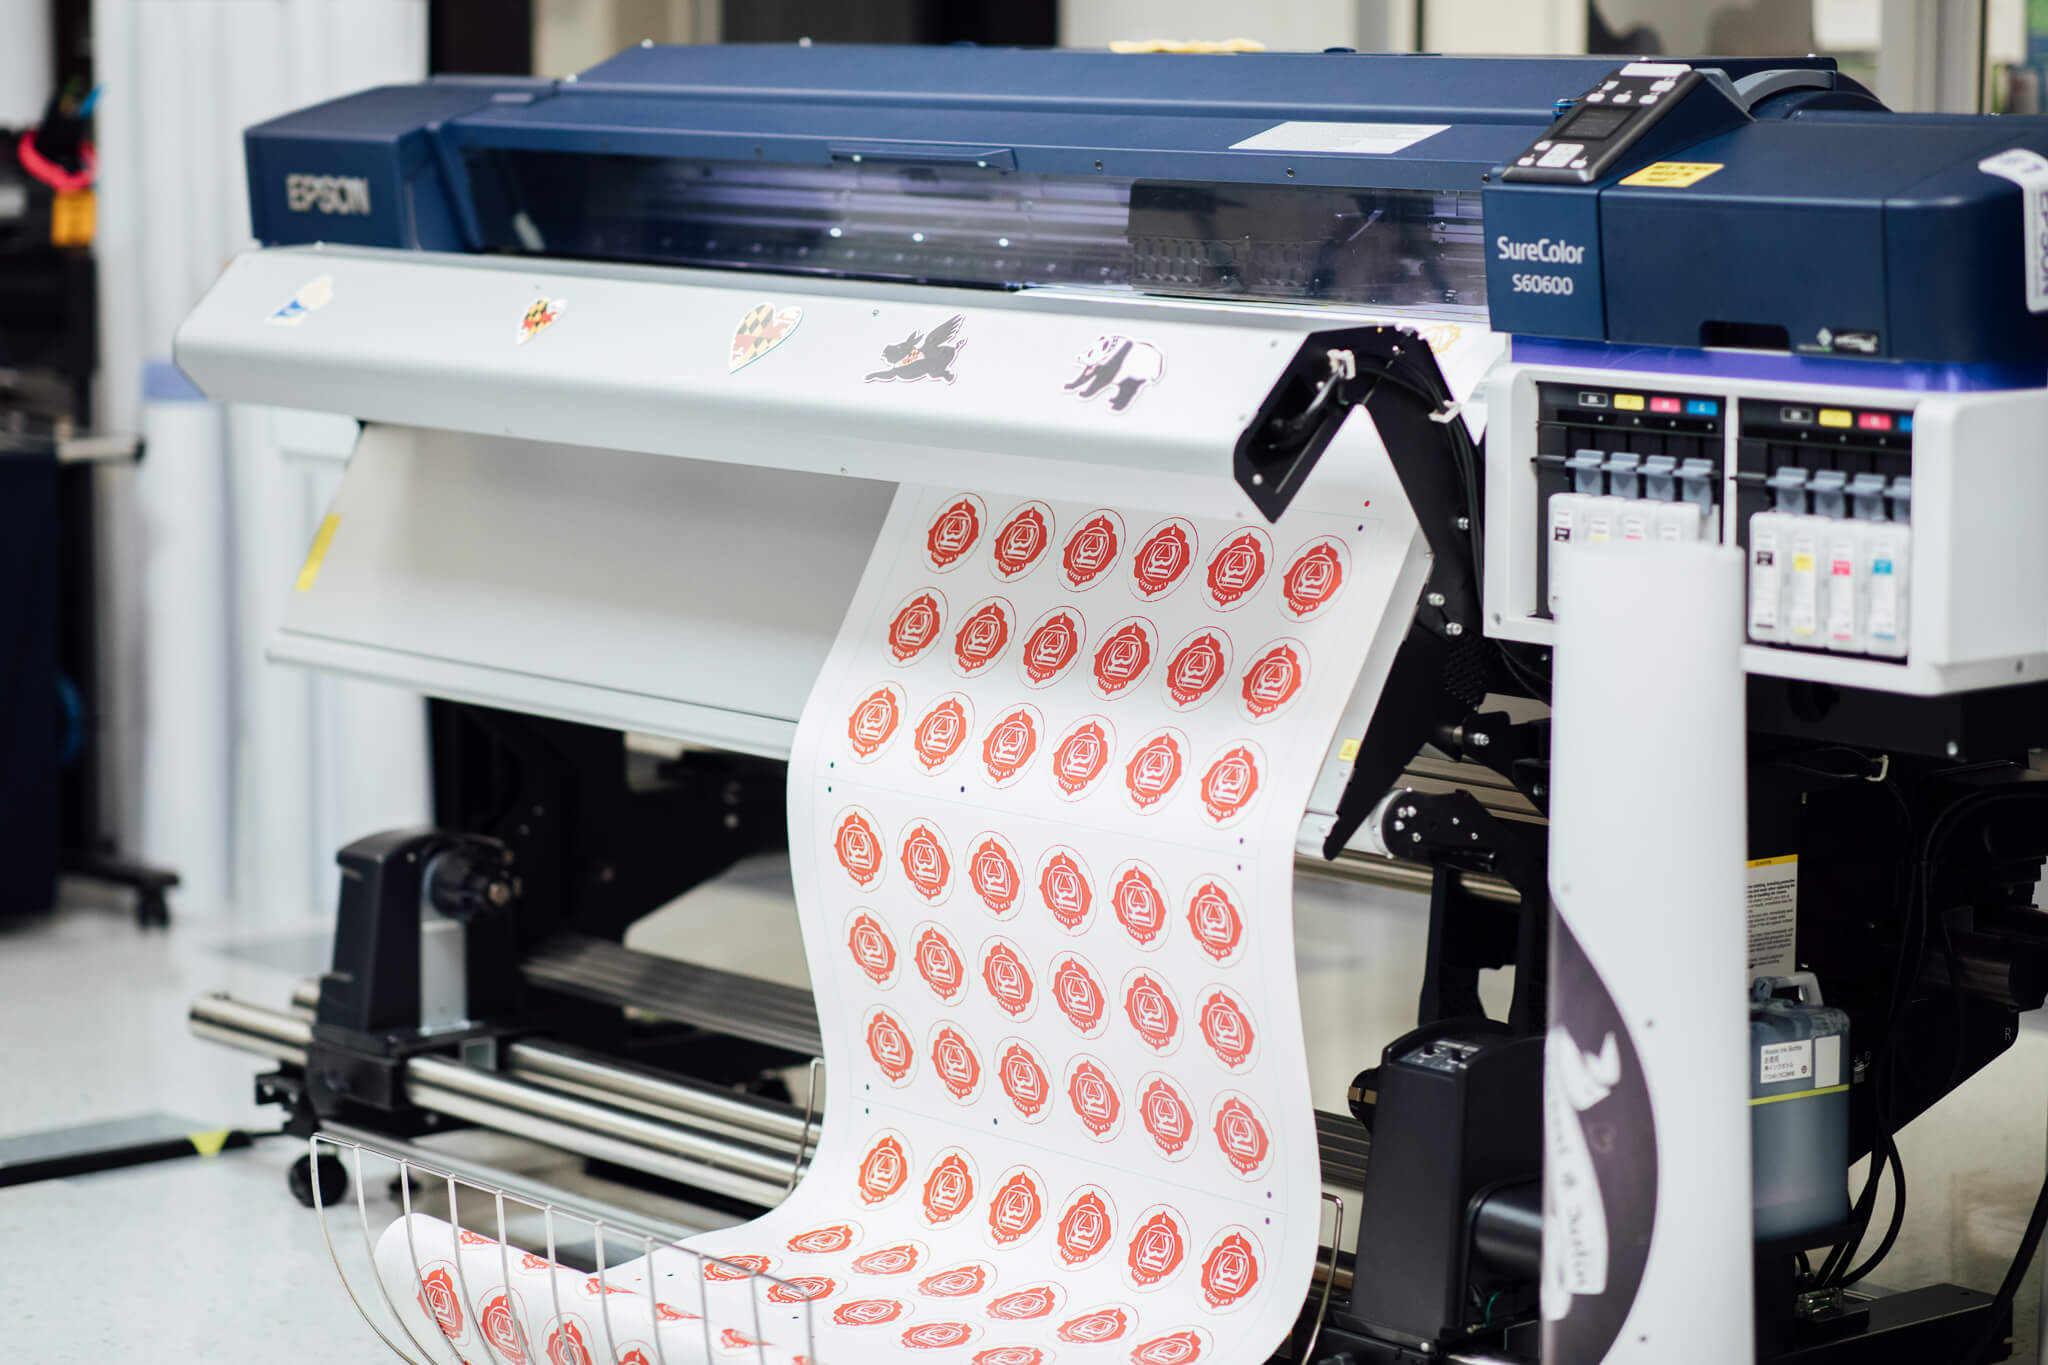 A high-end Epson printer prints out a sheet of vinyl decals